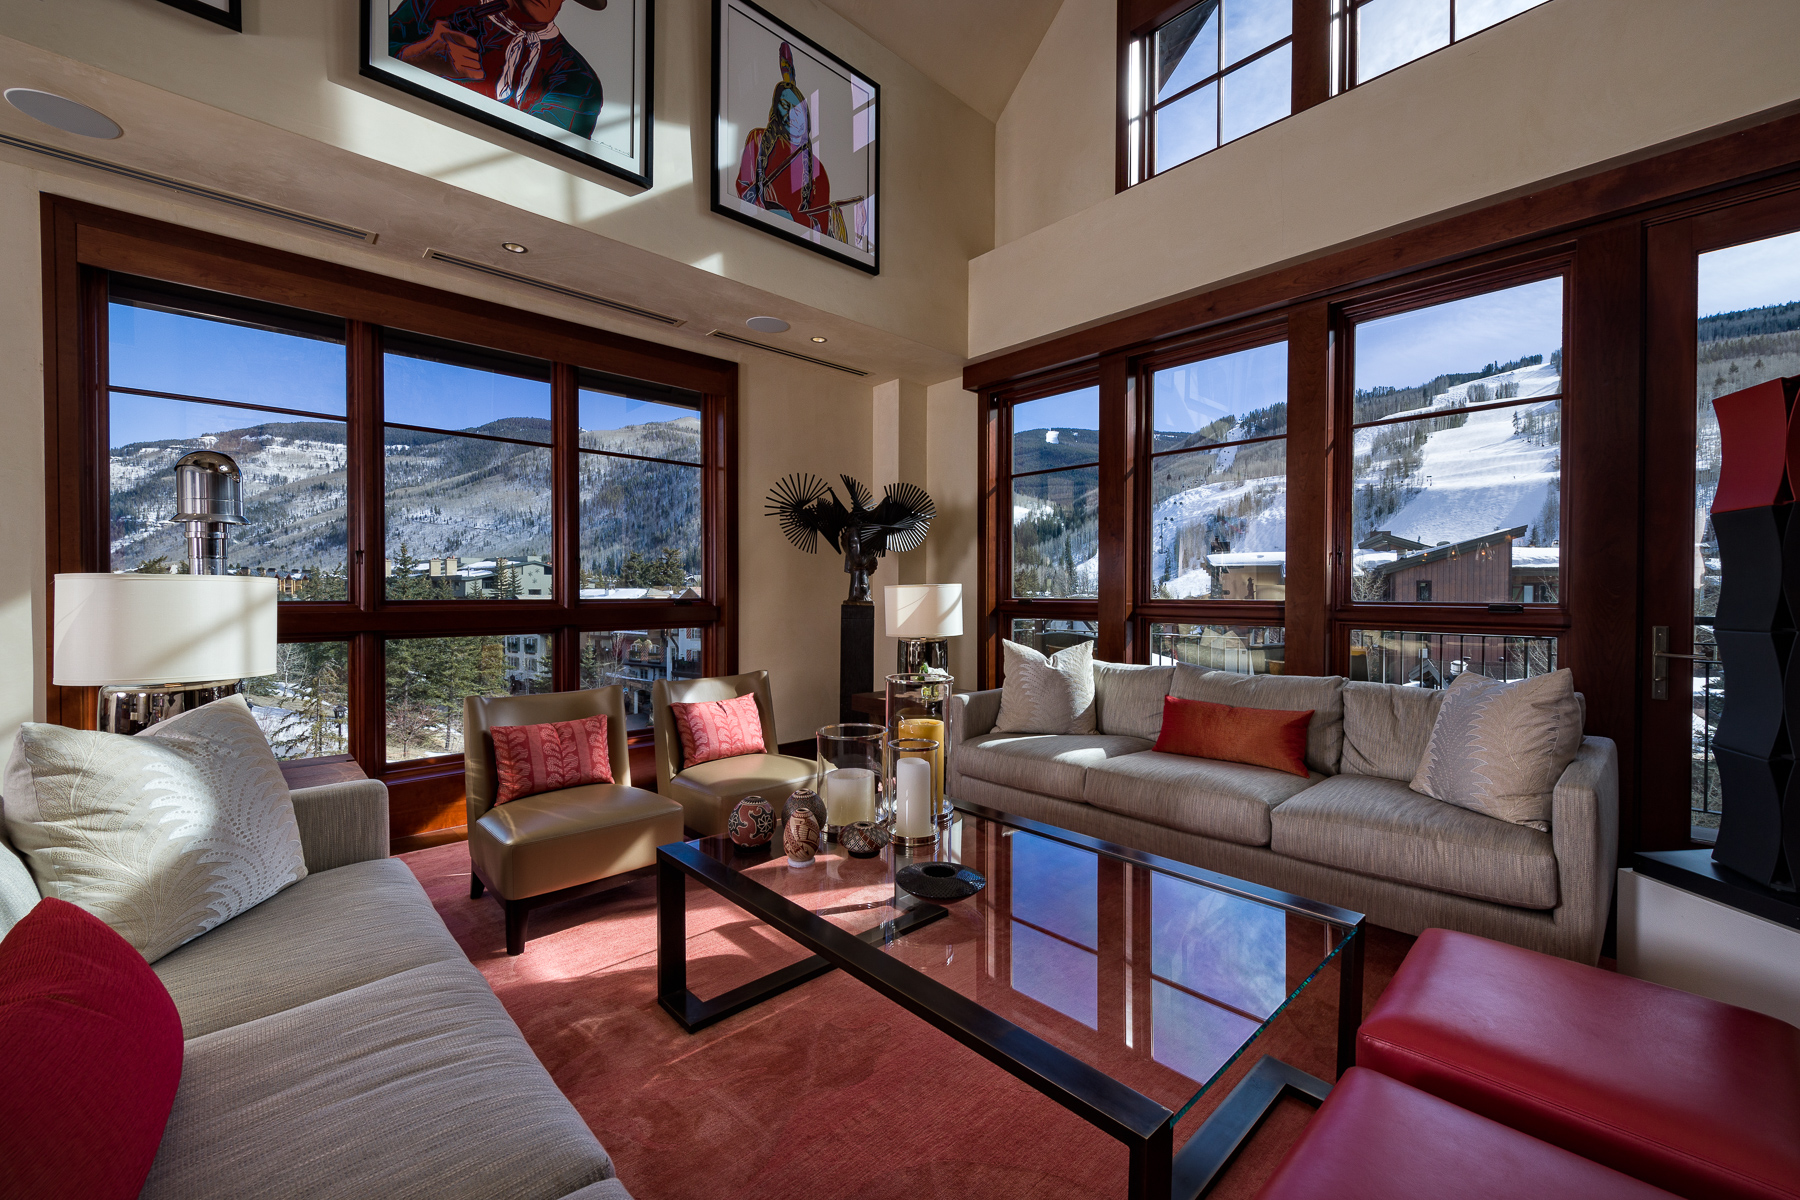 Condomínio para Venda às Magnificent Solaris Penthouse 141 E. Meadow Drive #PH E Vail Village, Vail, Colorado, 81657 Estados Unidos